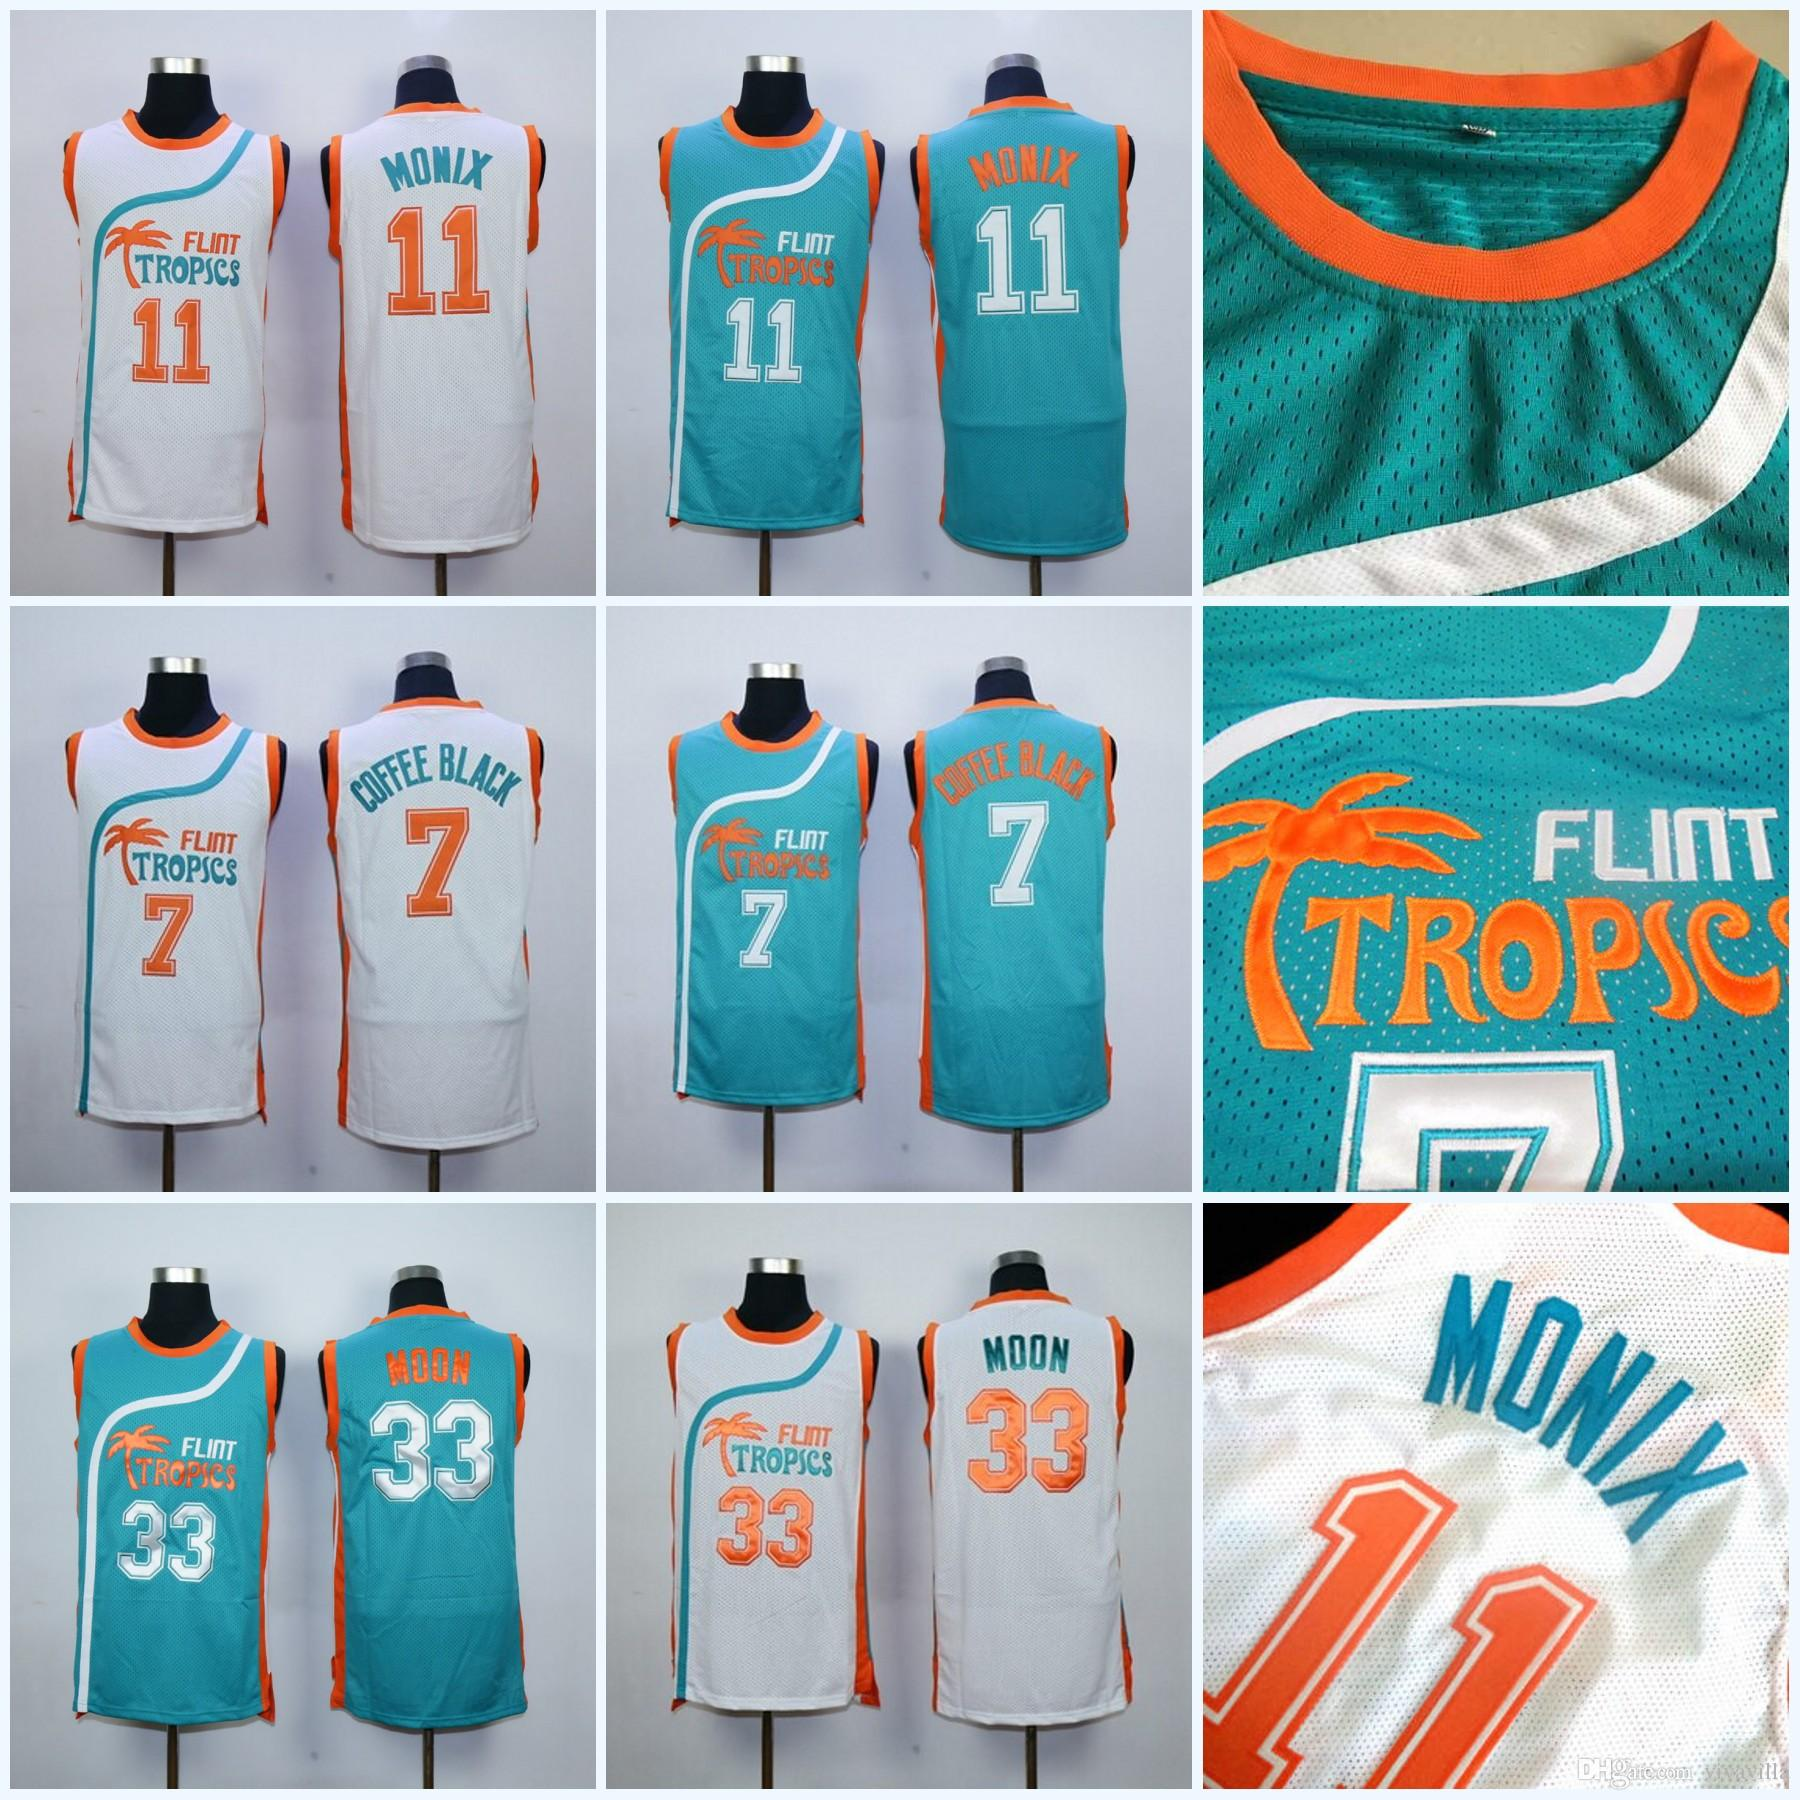 698502d69211 2019 Mens Flint Tropics Semi Pro  11 Ed Monix Basketball Jersey  7 Coffee  Black  33 Jackie Moon Movie Jerseys White Blue Stitched S XXXL From  Vivavilla